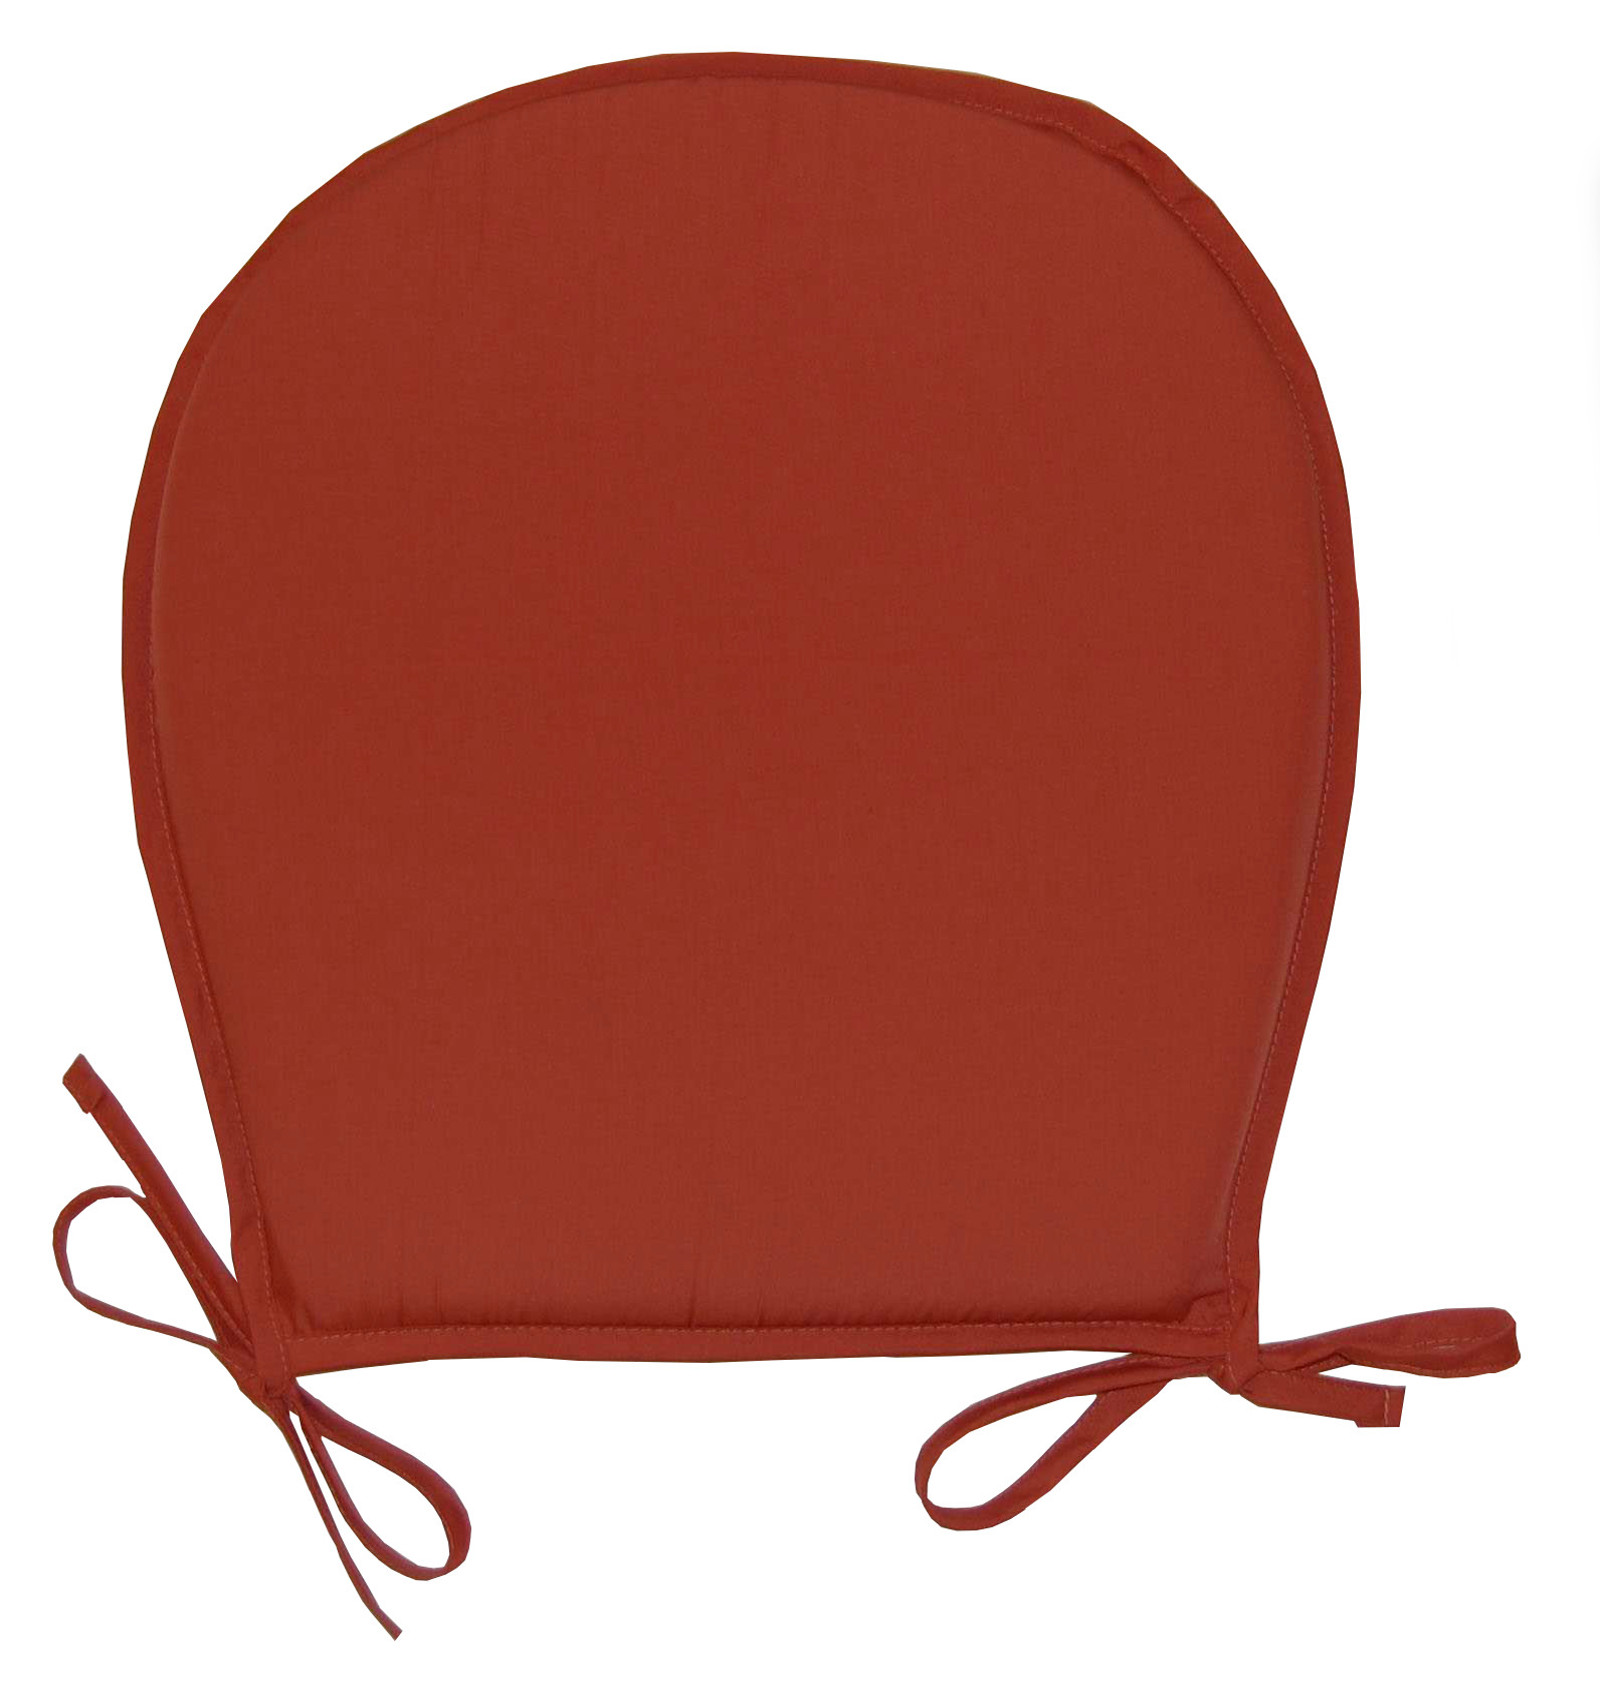 seat pads for kitchen chairs kitchen chair pads Top Kitchen Chair Pads kB jpeg